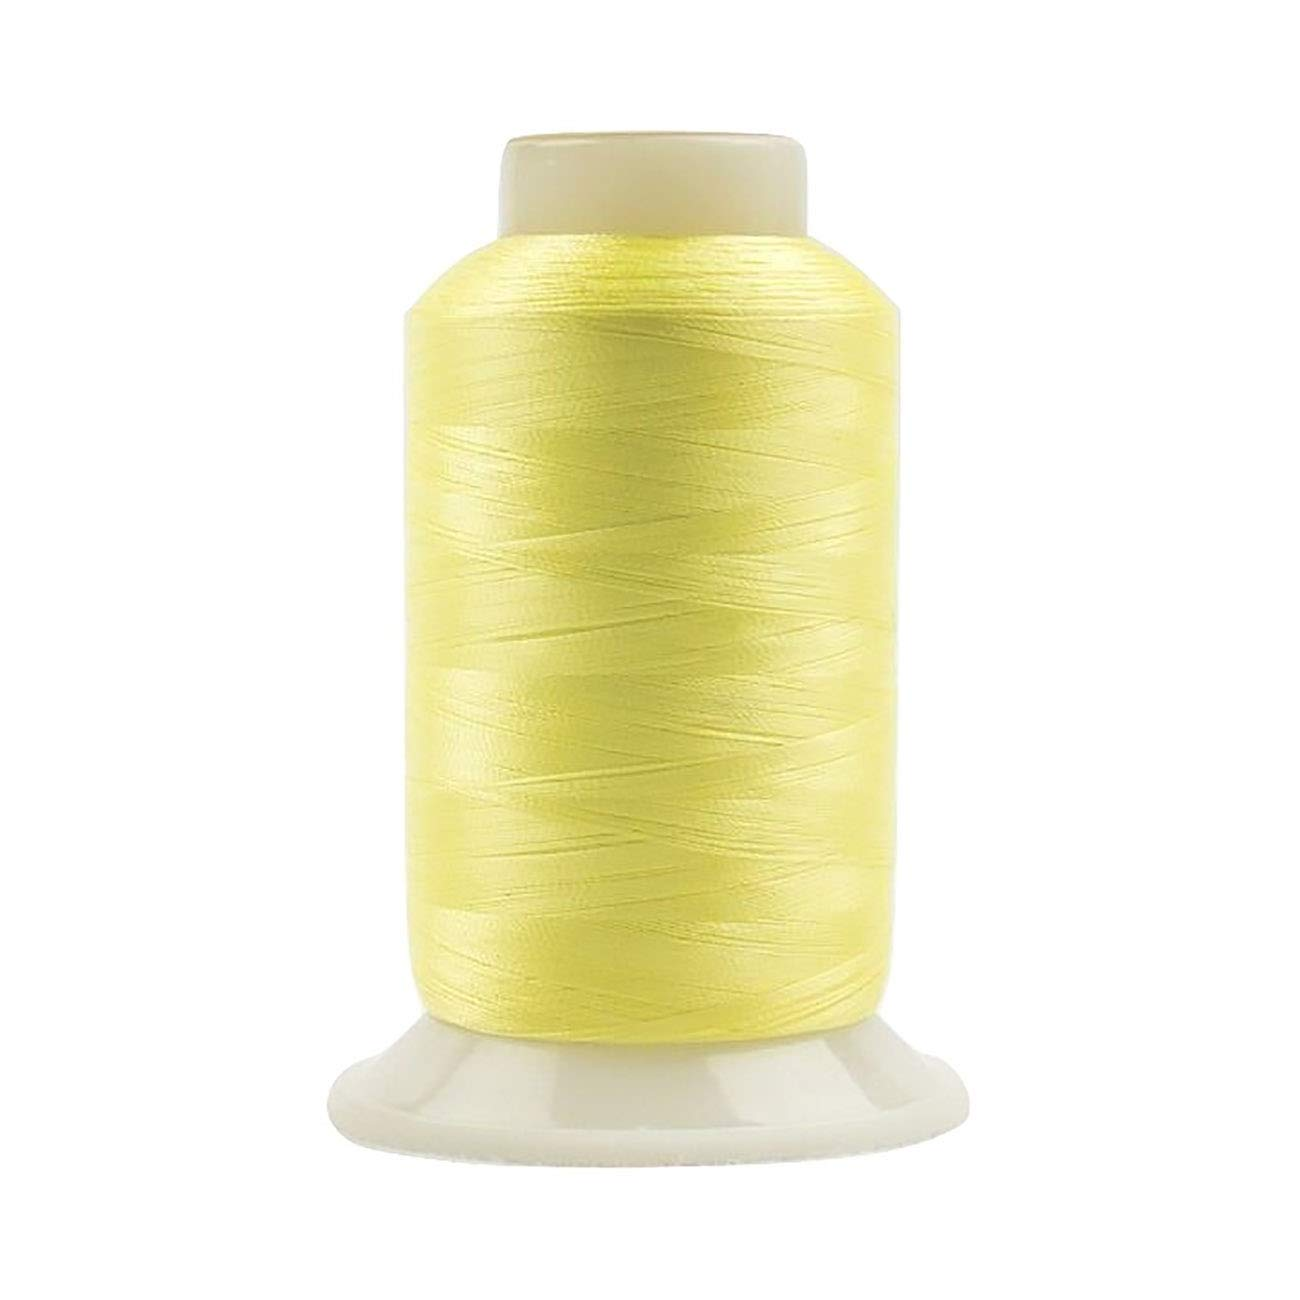 InvisaFil Silk-Like Thread for Fine Sewing Rust WonderFil 2500m 2-Ply Cottonized Soft Polyester 100wt Specialty Threads